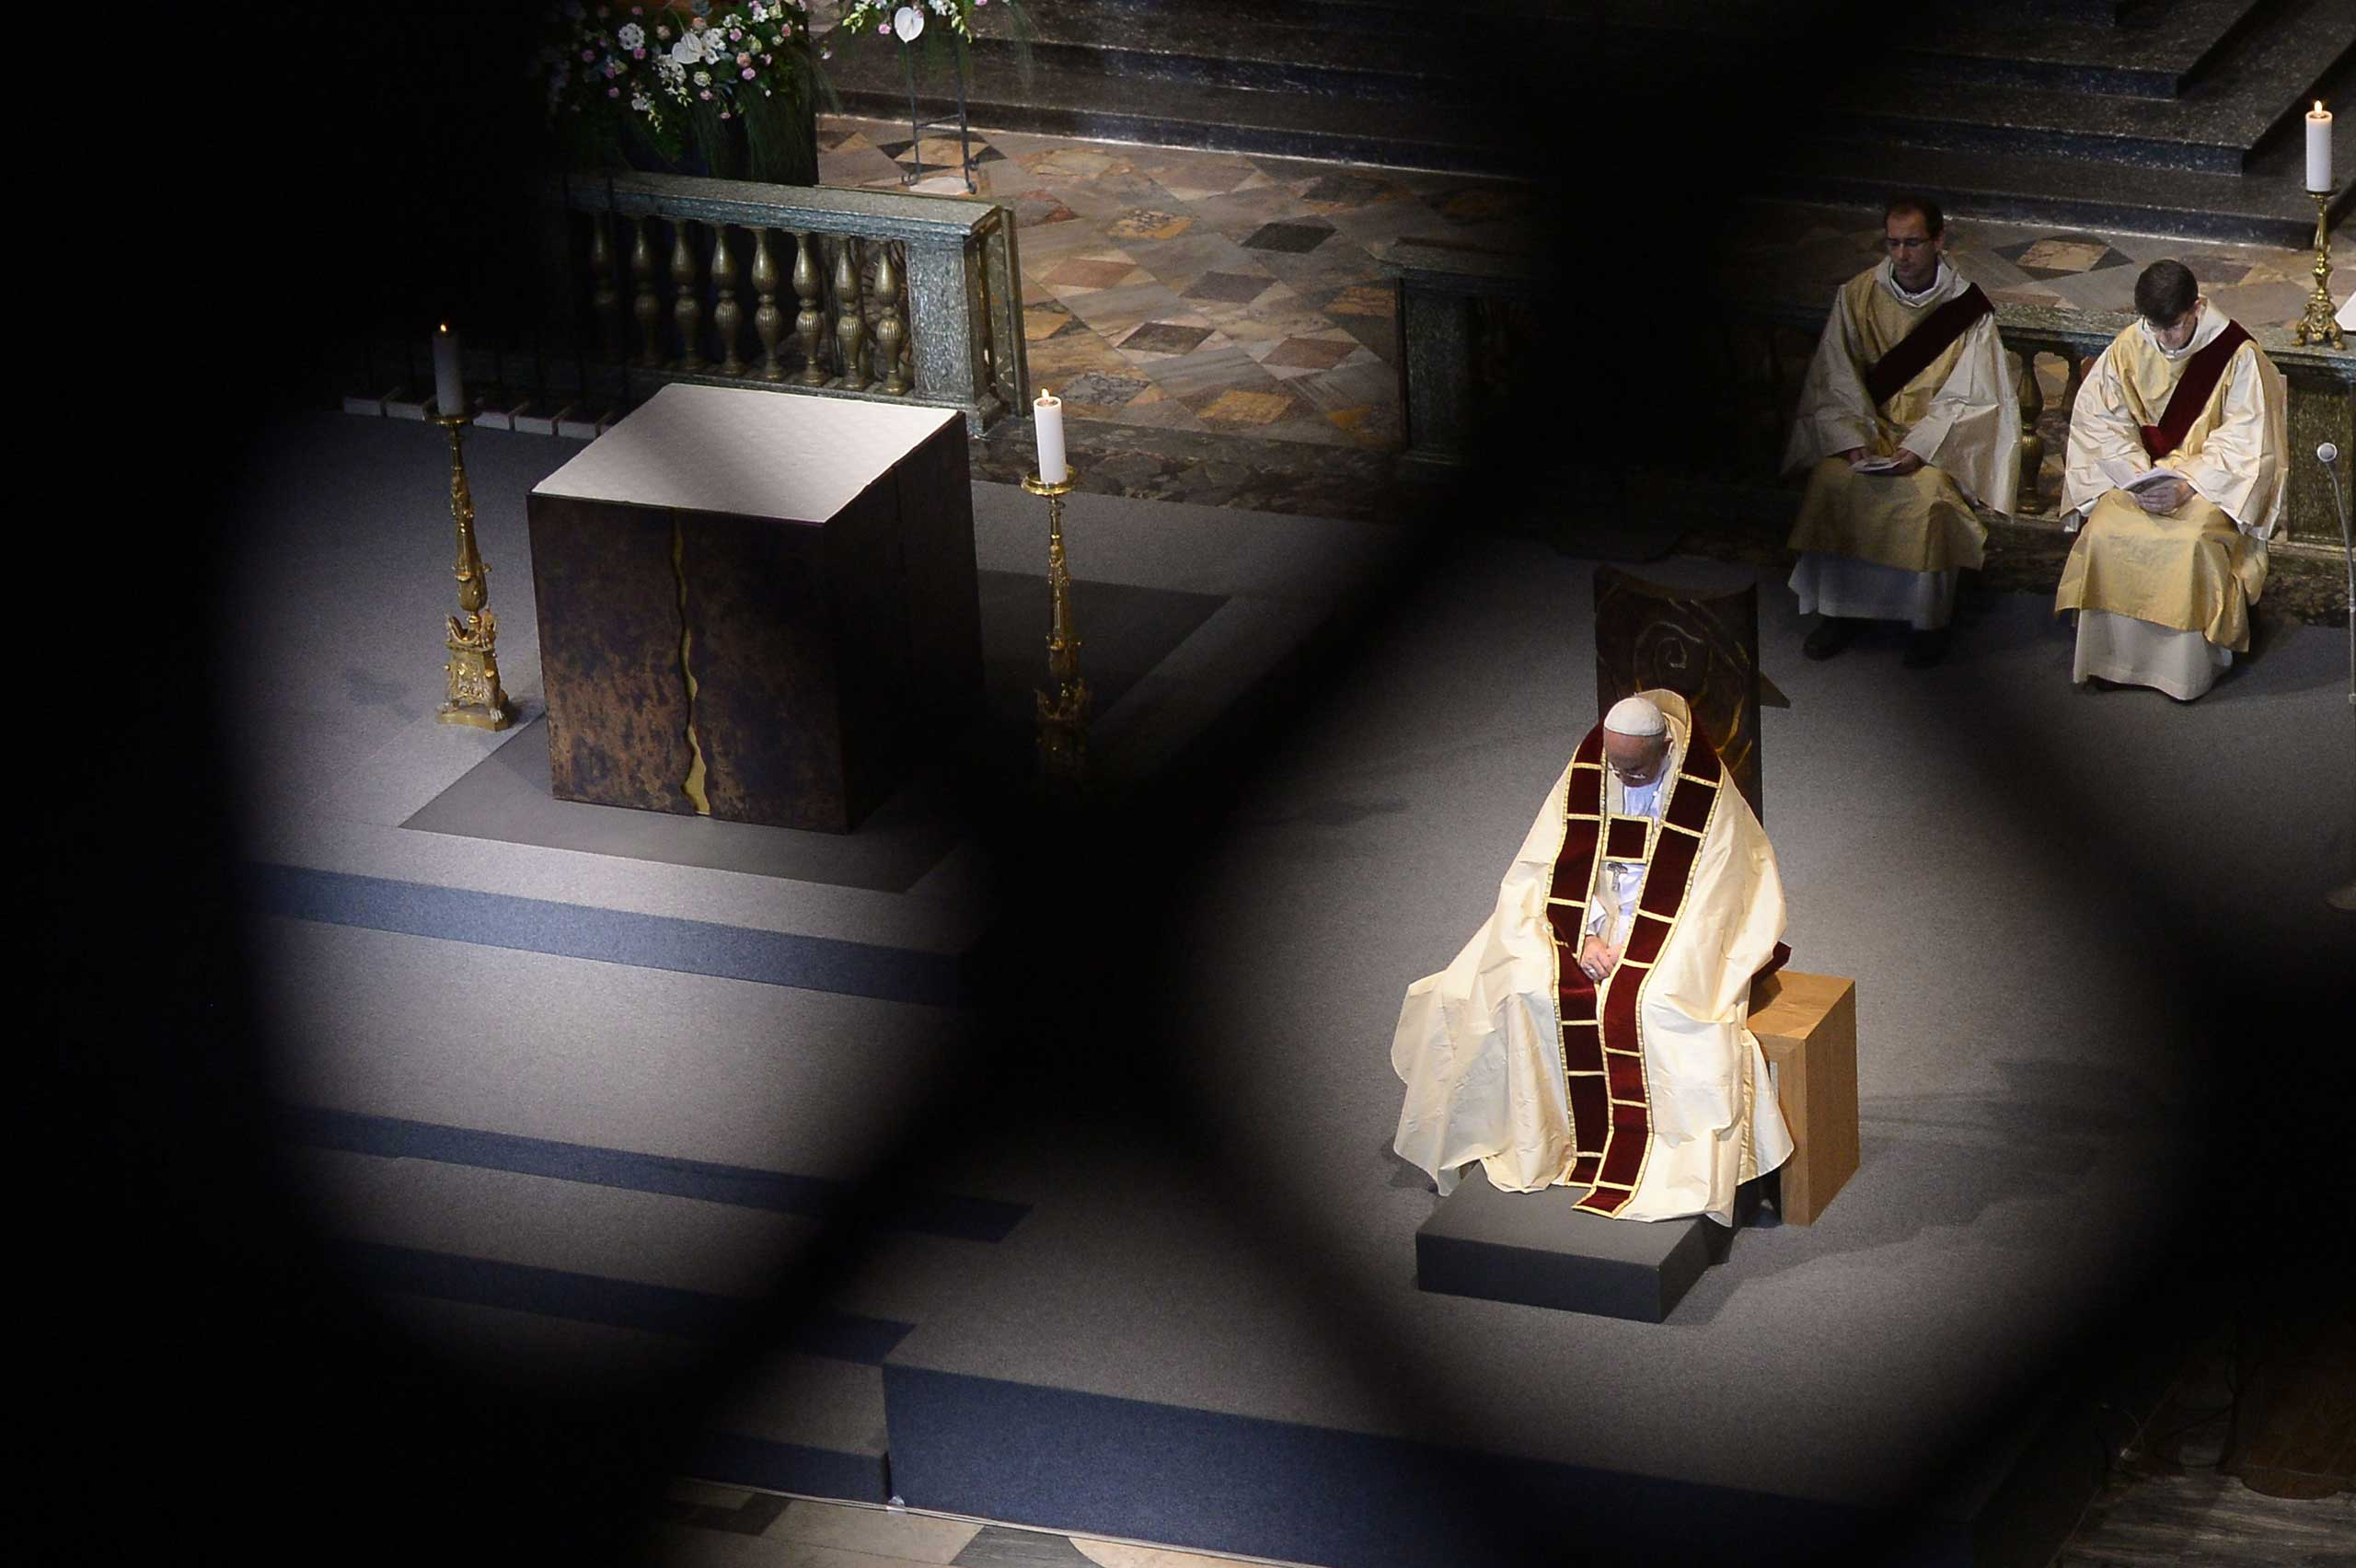 Sept. 27, 2014. Pope Francis celebrates Vespers on the occasion of the Bicentennial of the Restoration of the Society of Jesus at the Gesu church (Chiesa del Gesu) in Rome.